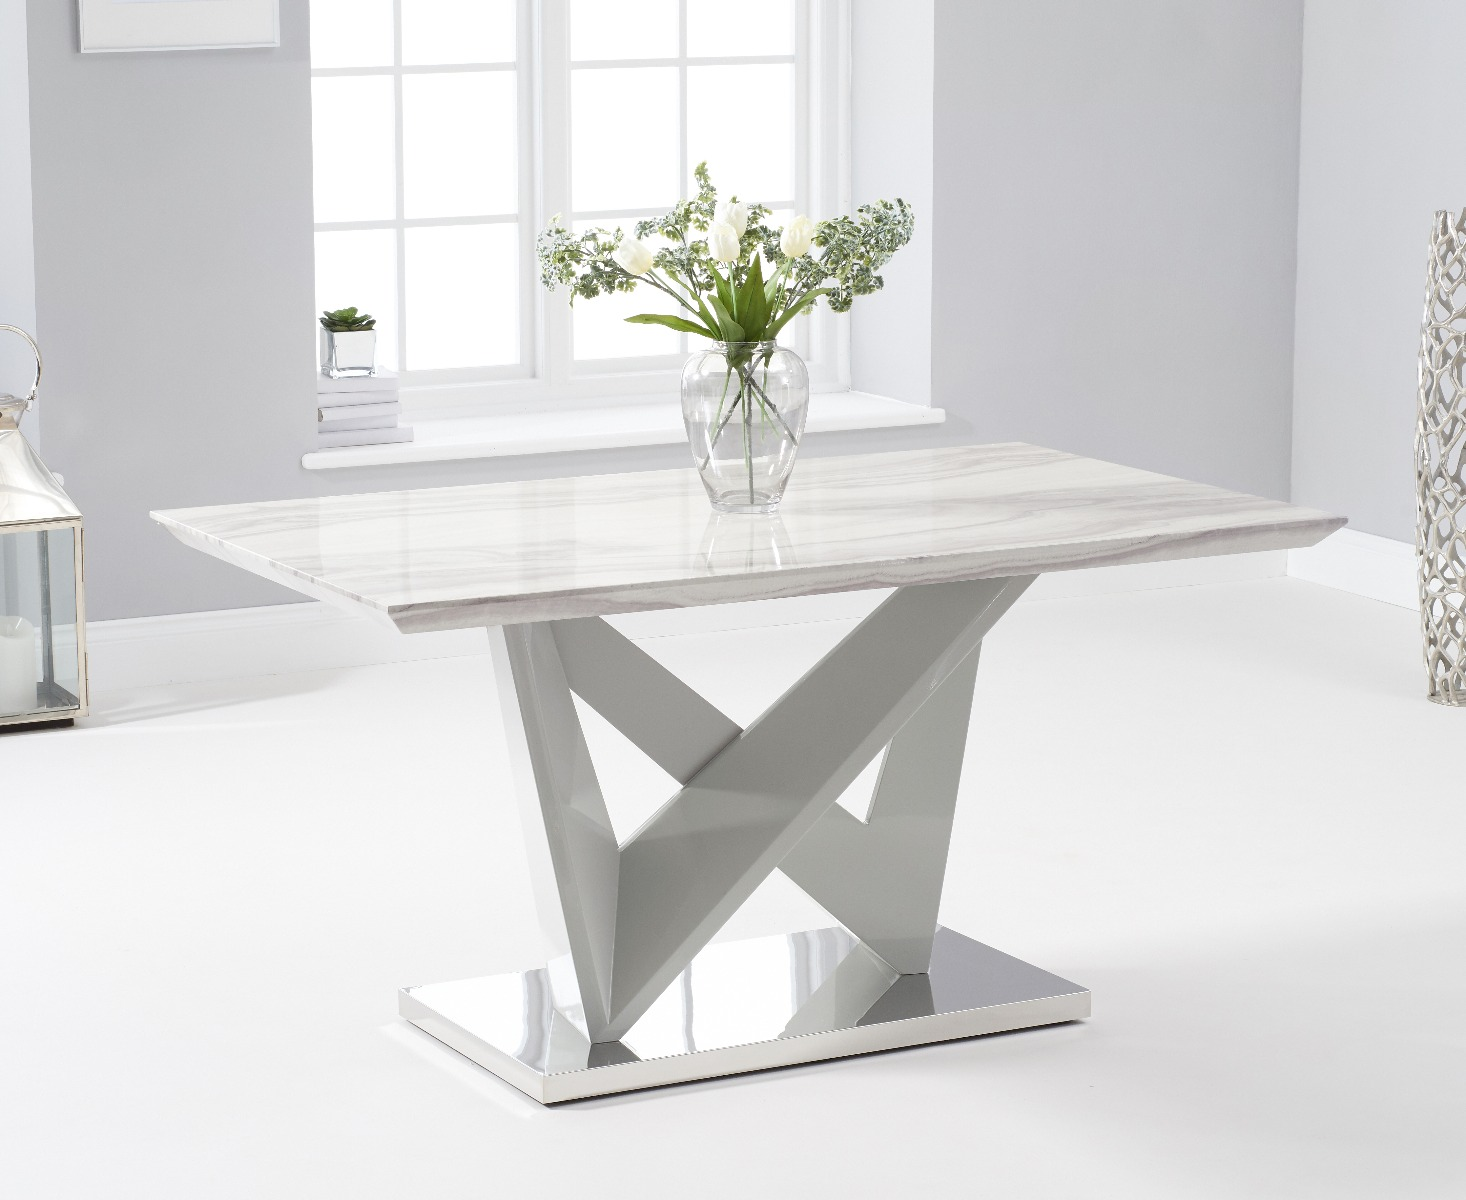 Picture of: Reims 150cm Marble Effect Carrera Light Grey Dining Table